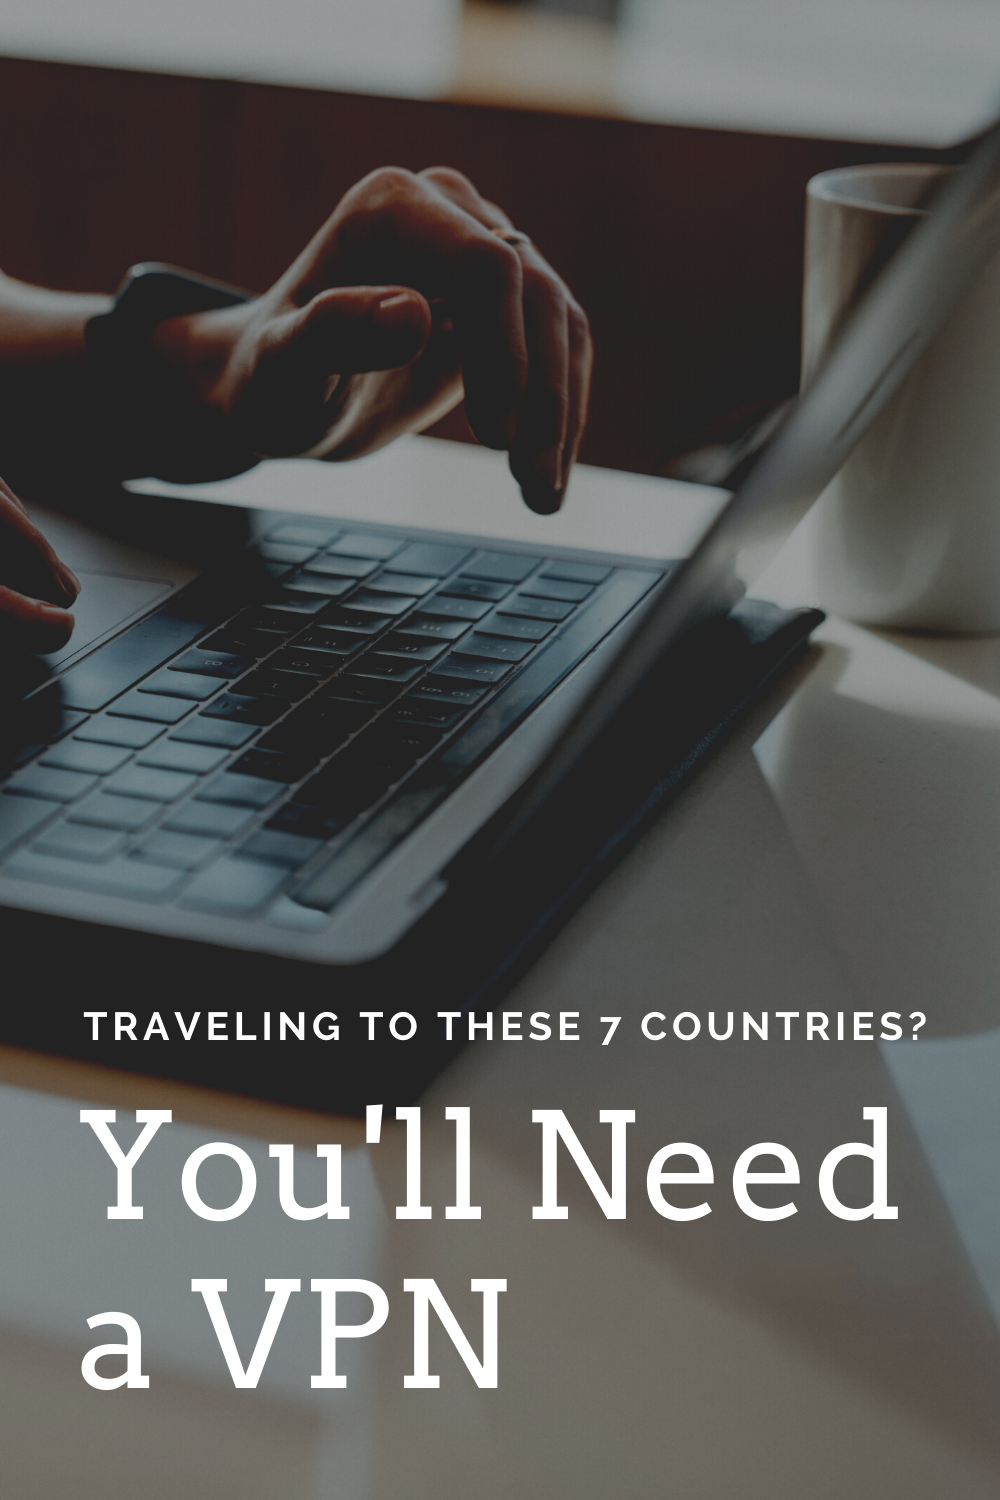 Traveling to These 7 Countries You'll Need a VPN